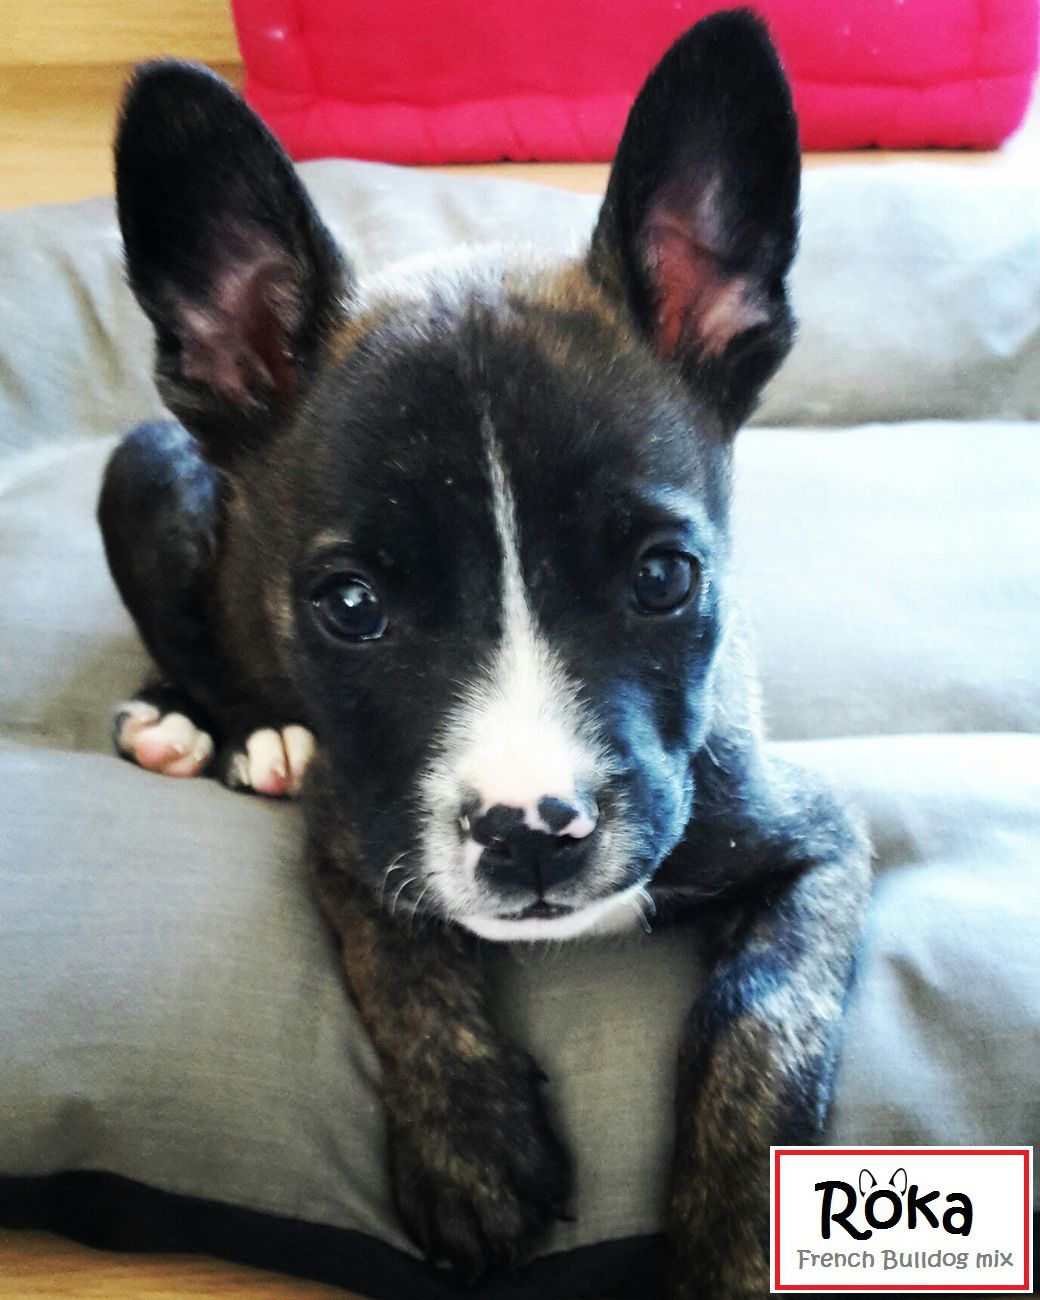 Roka Is A French Bulldog And Jack Russell Mix He Is 9 Weeks Roka Est Un Bouledogue Francais Croise Jack Russell French Bulldog Mix Puppy Time Terrier Mix